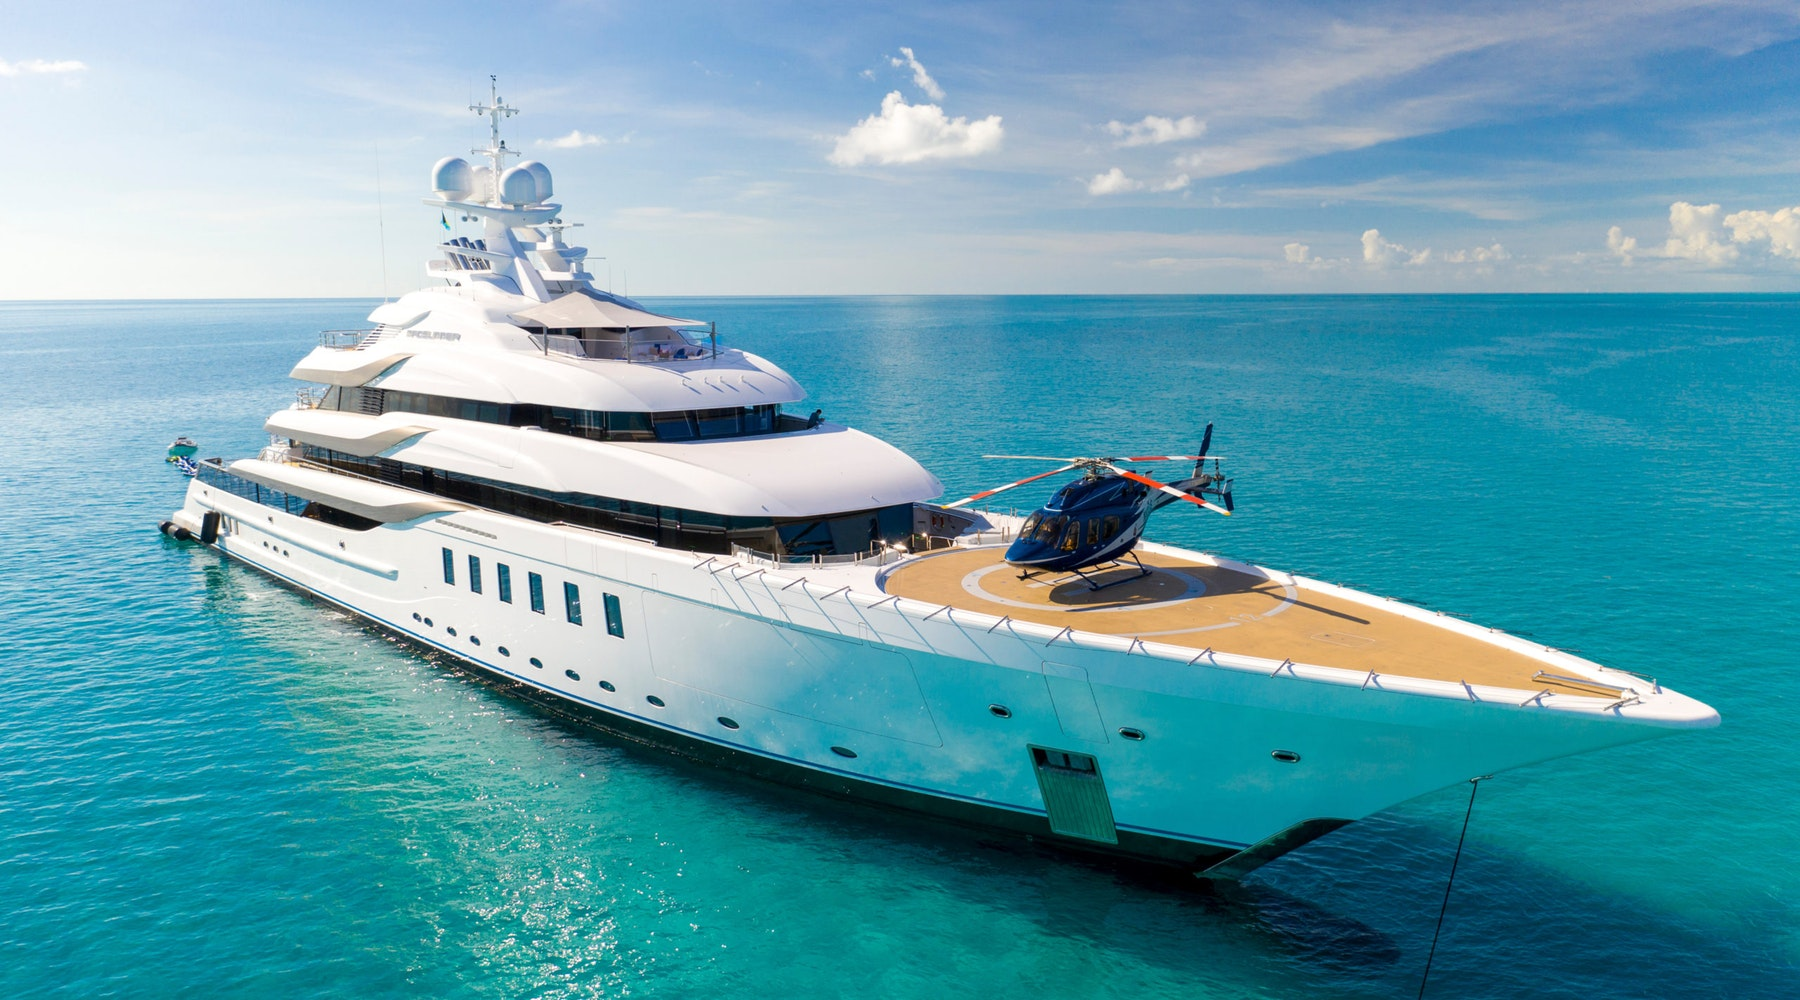 How to charter a yacht in the caribbean yacht holidays1 - How to charter a yacht in the caribbean yacht holidays